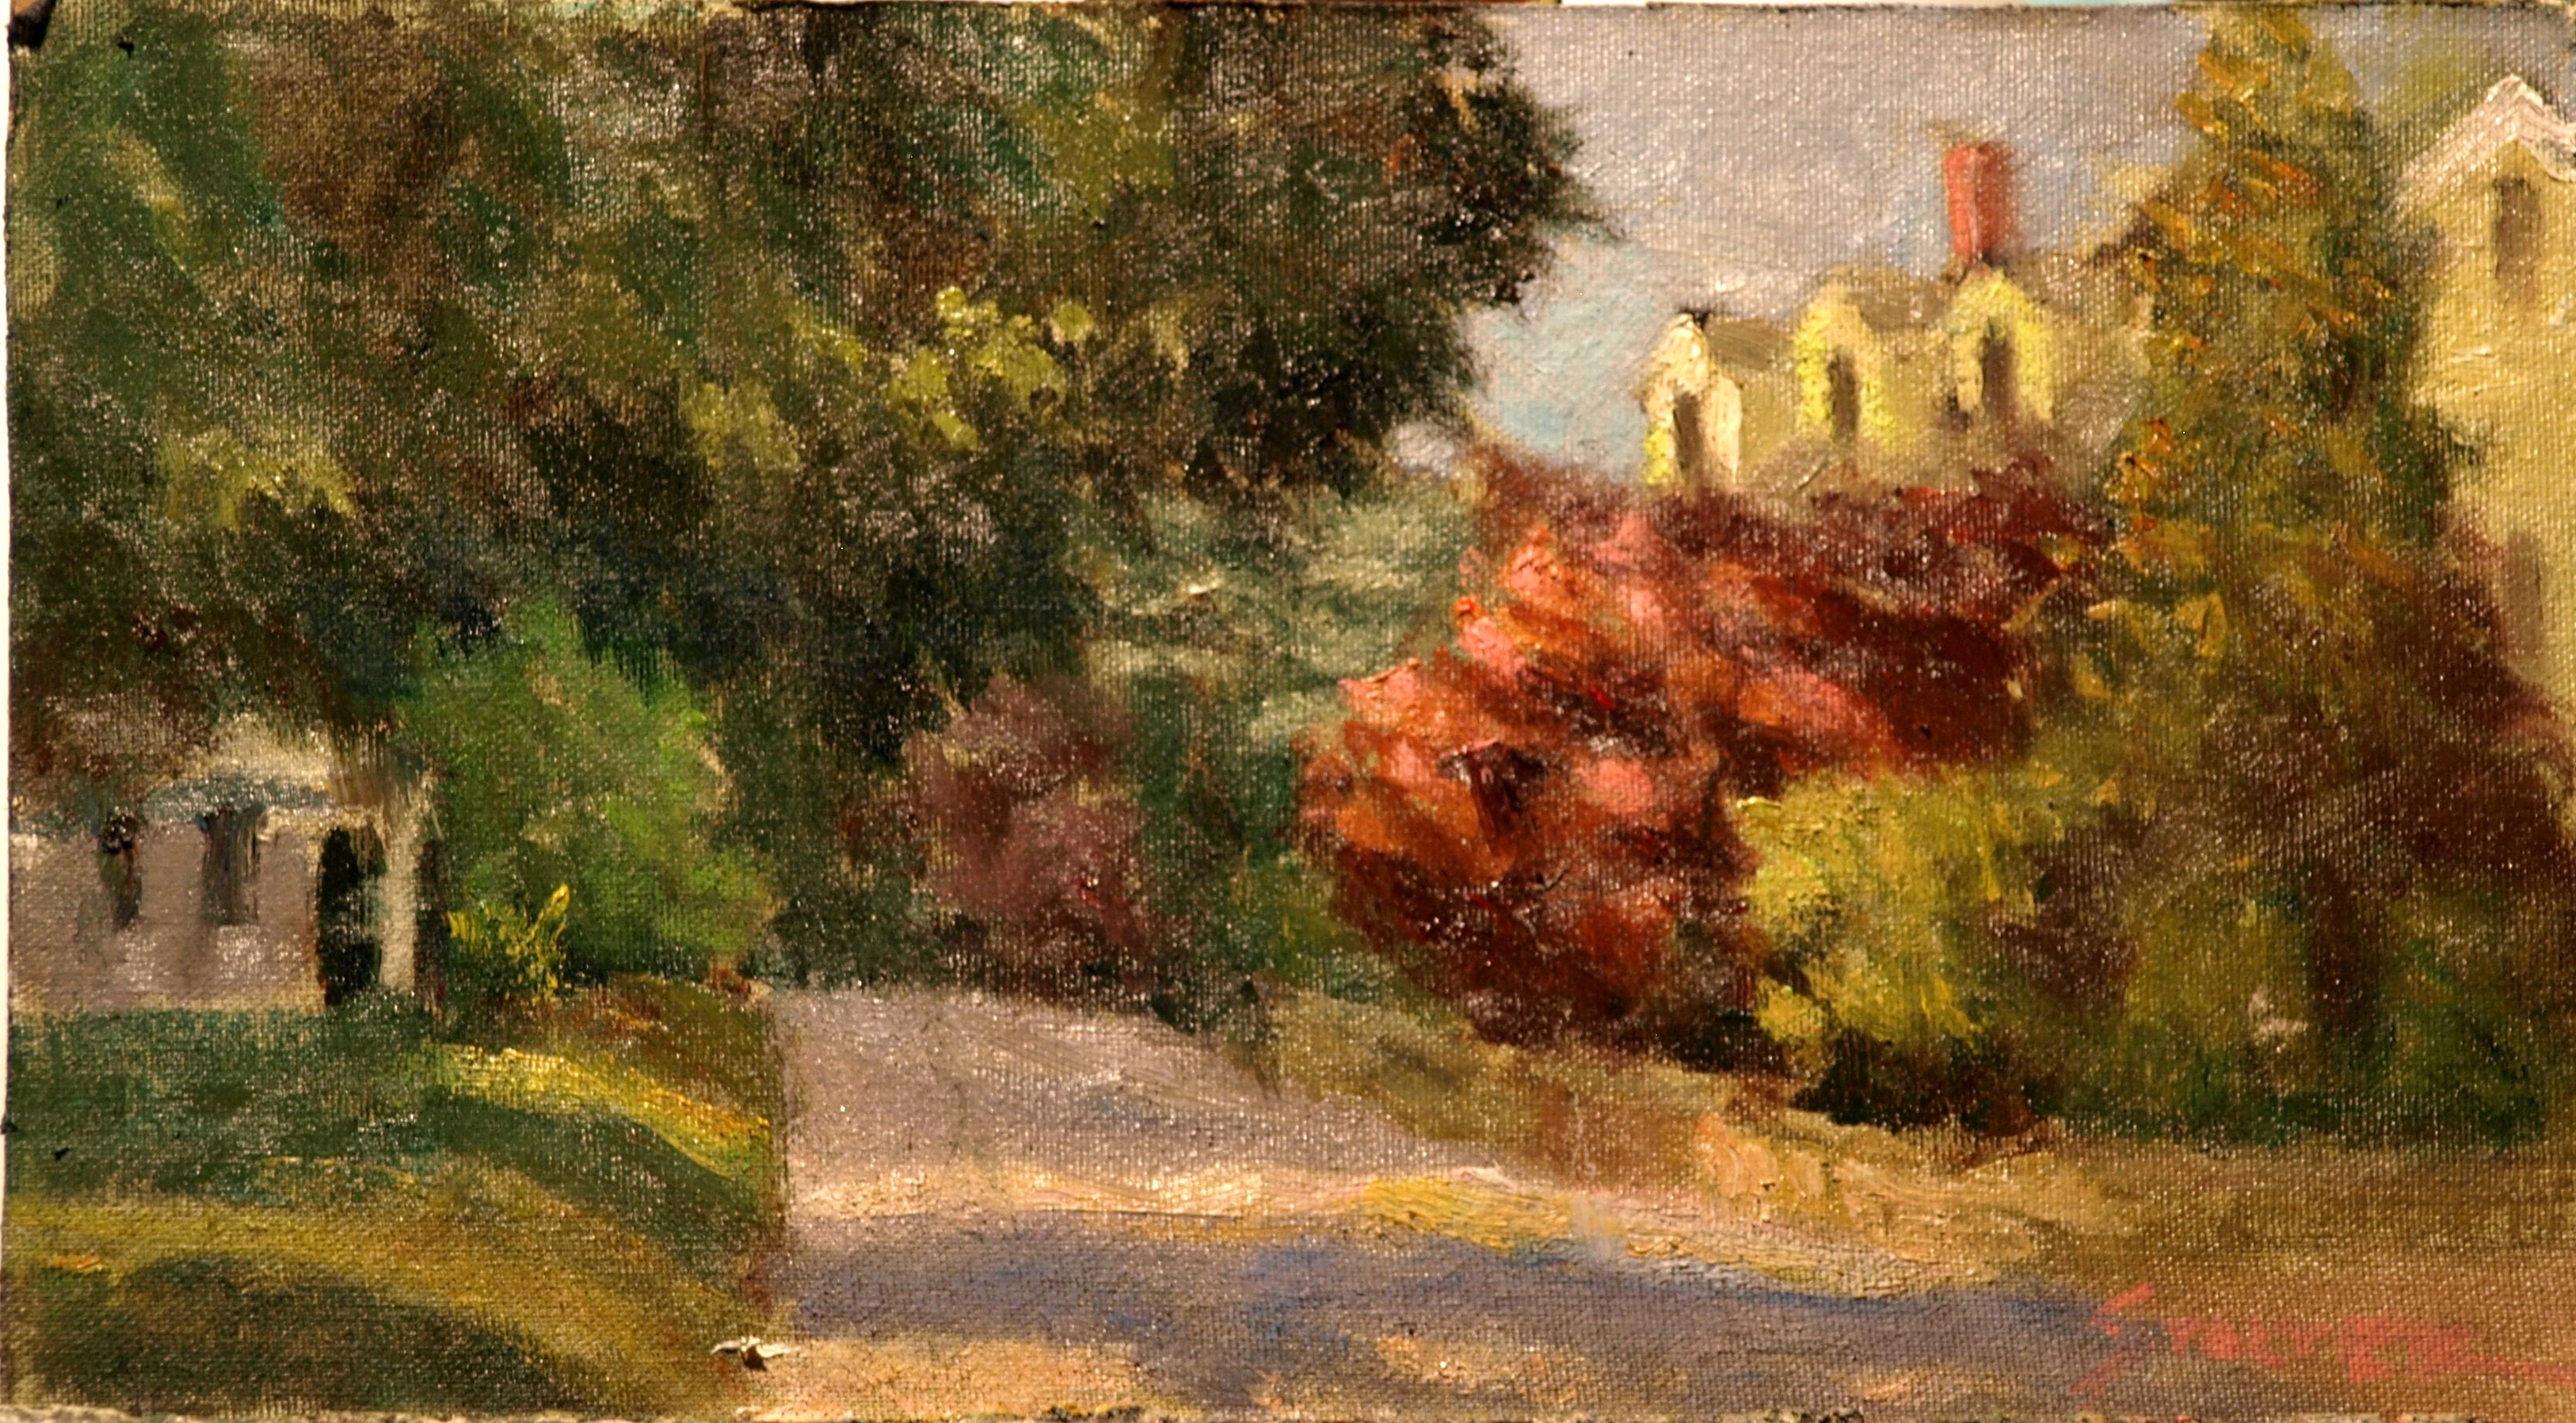 North Stonington Street, Oil on Canvas on Panel, 8 x 14 Inches, by Richard Stalter, $225